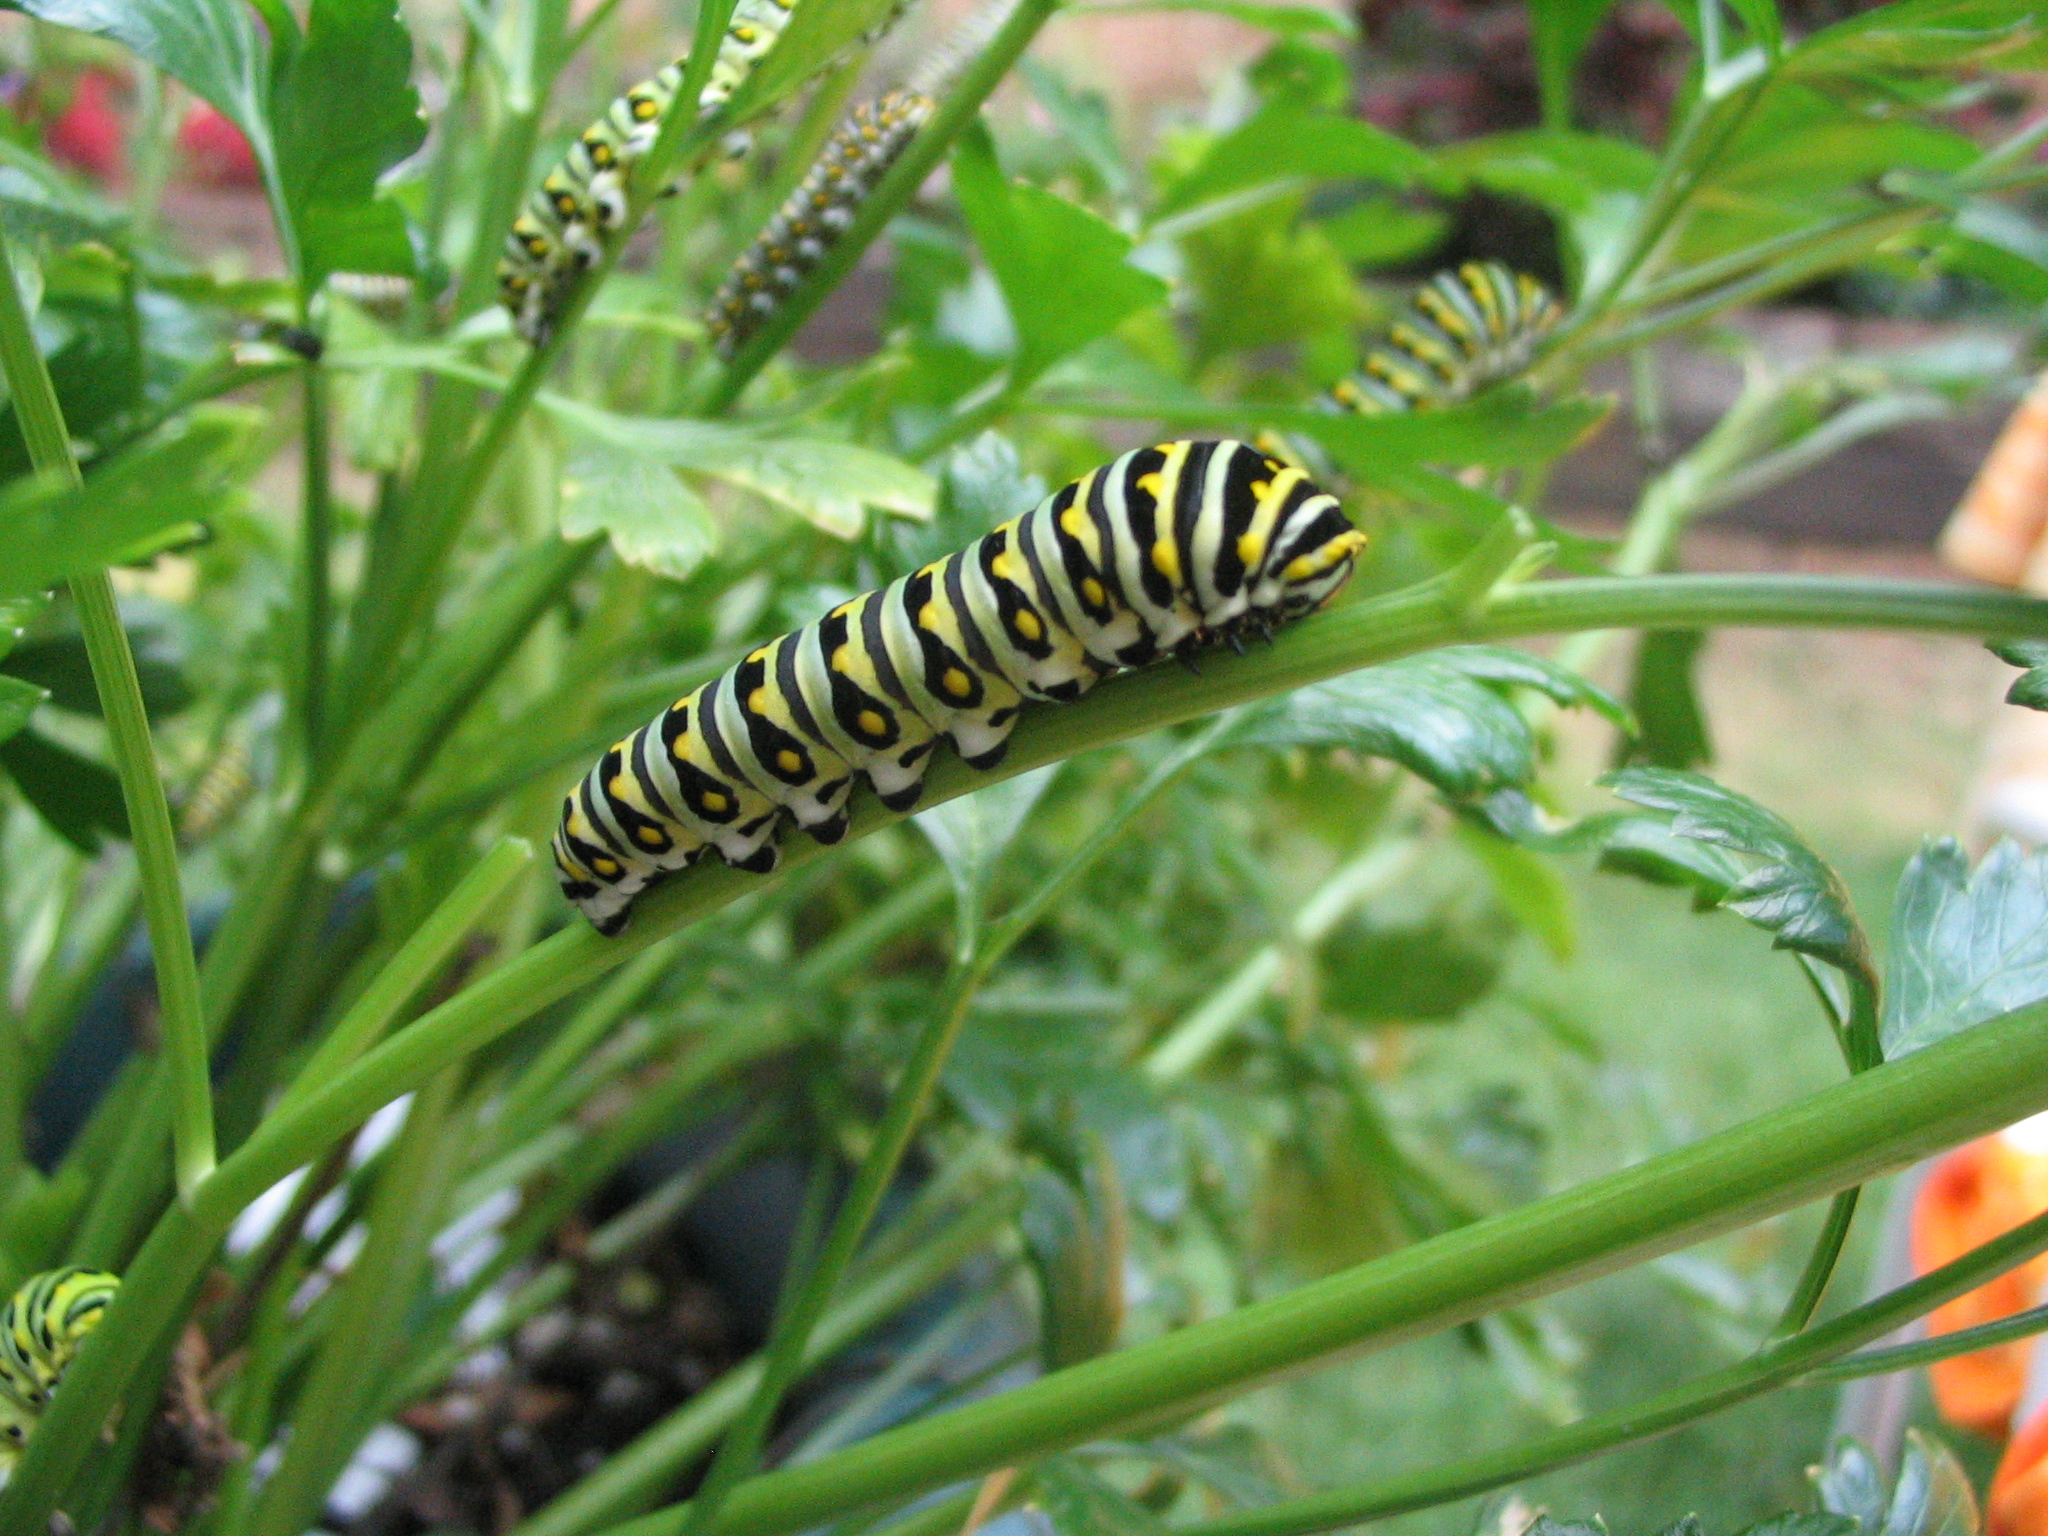 File:Black swallowtail caterpillar.jpg - Wikimedia Commons